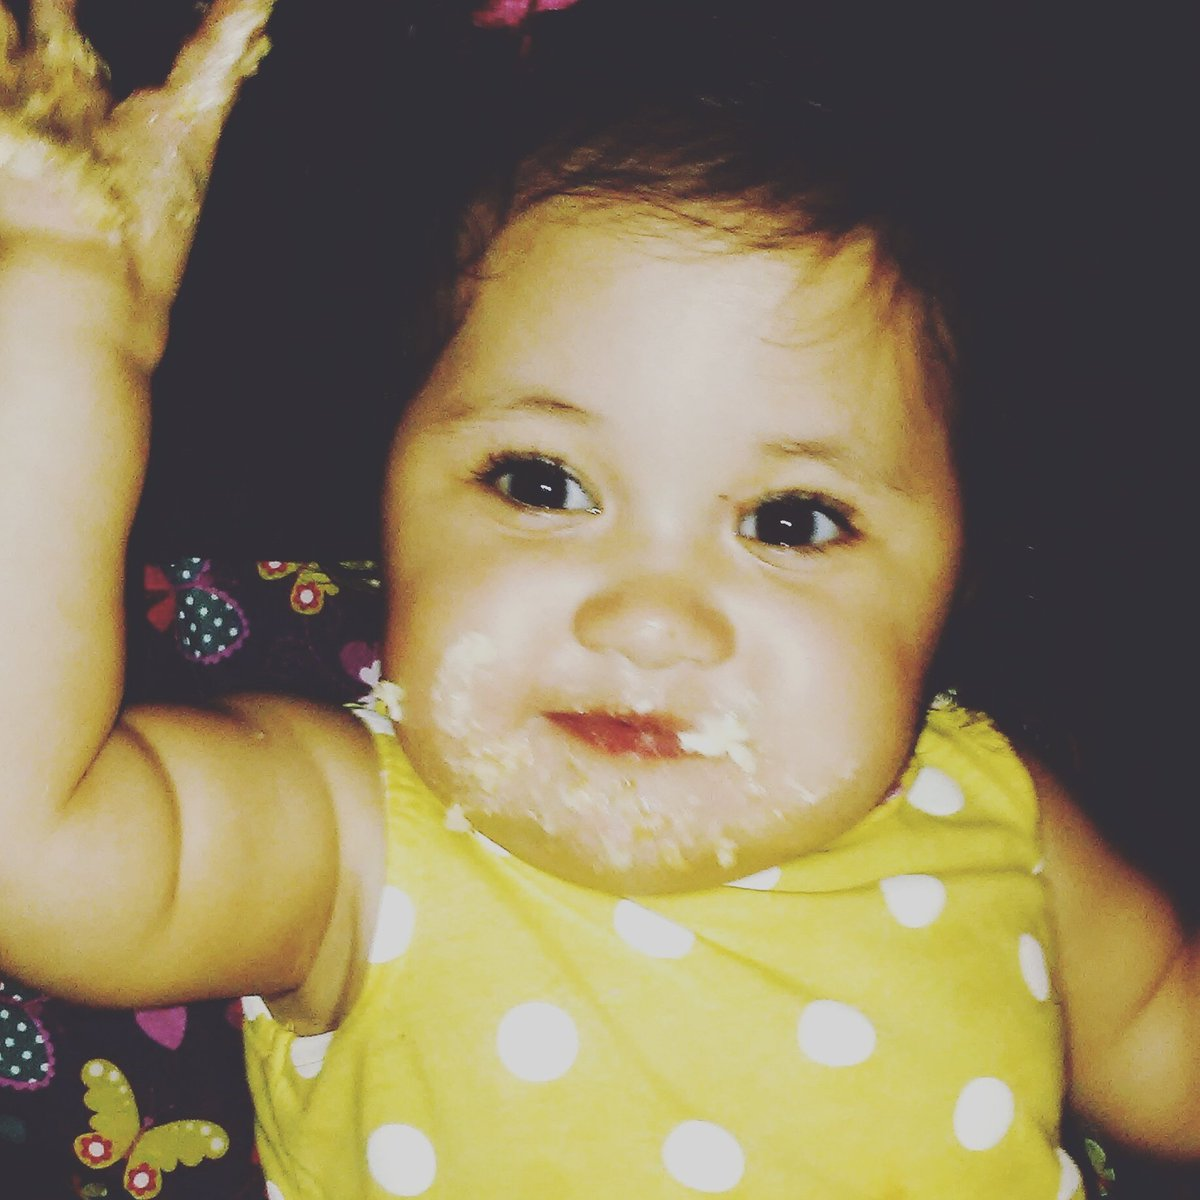 1Year!  Her first taste of cake! (She definitely approves!)My darling, you&#39;re a whirlwind of smiles &amp; laughter! #HappyBirthday #motherhood <br>http://pic.twitter.com/NTH3pWRrnp